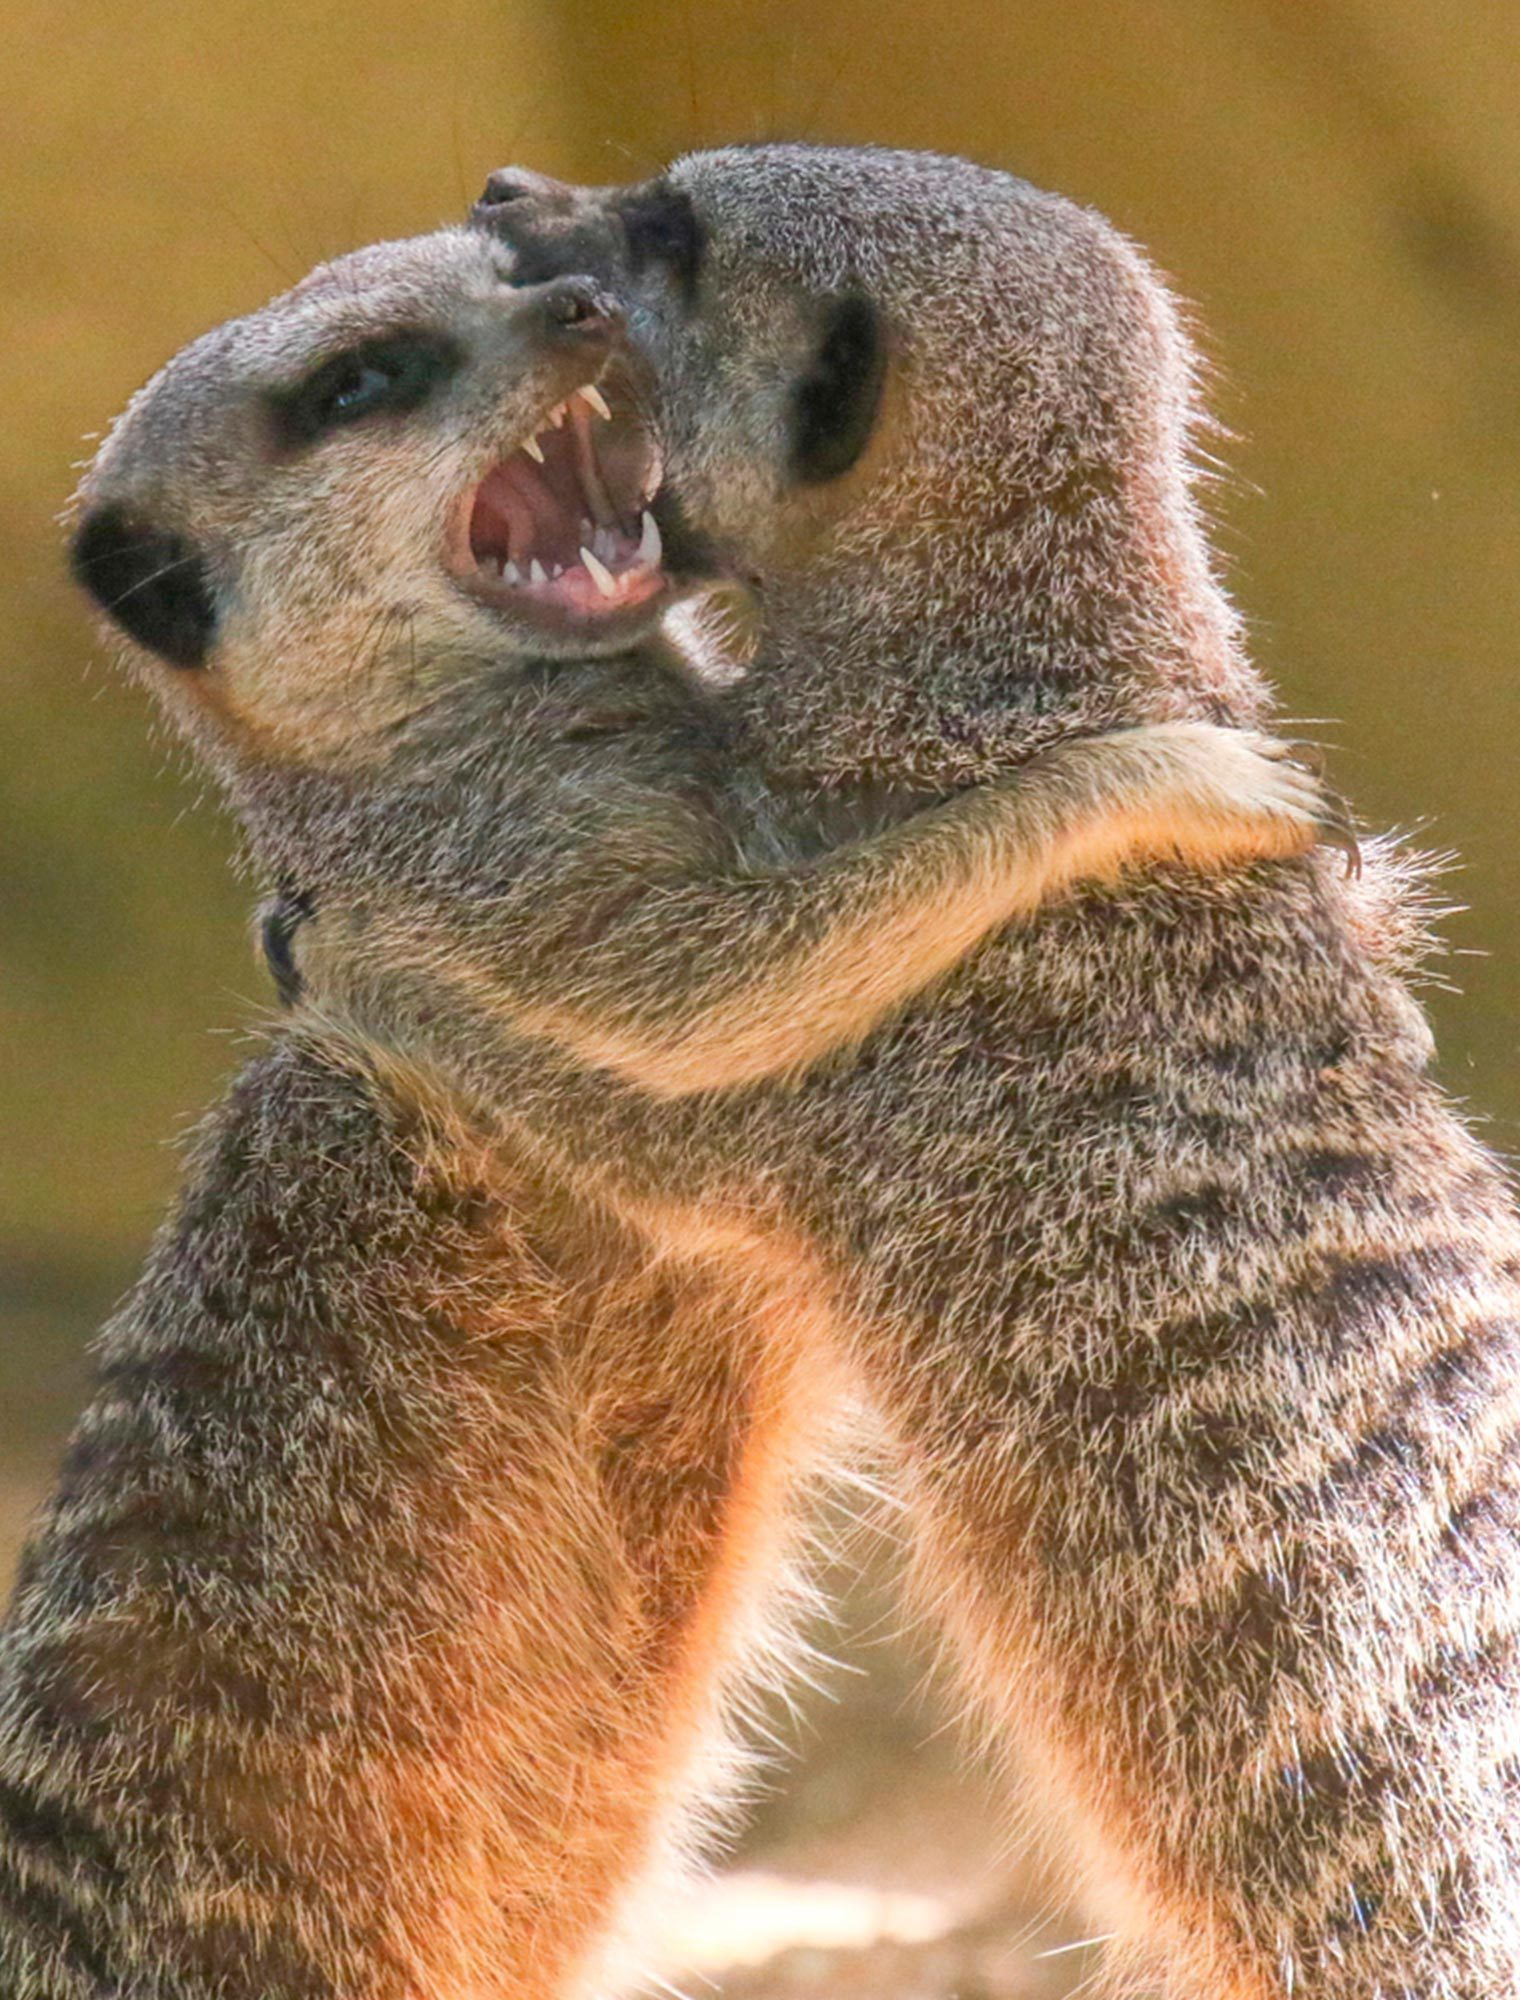 Meerkats play fighting